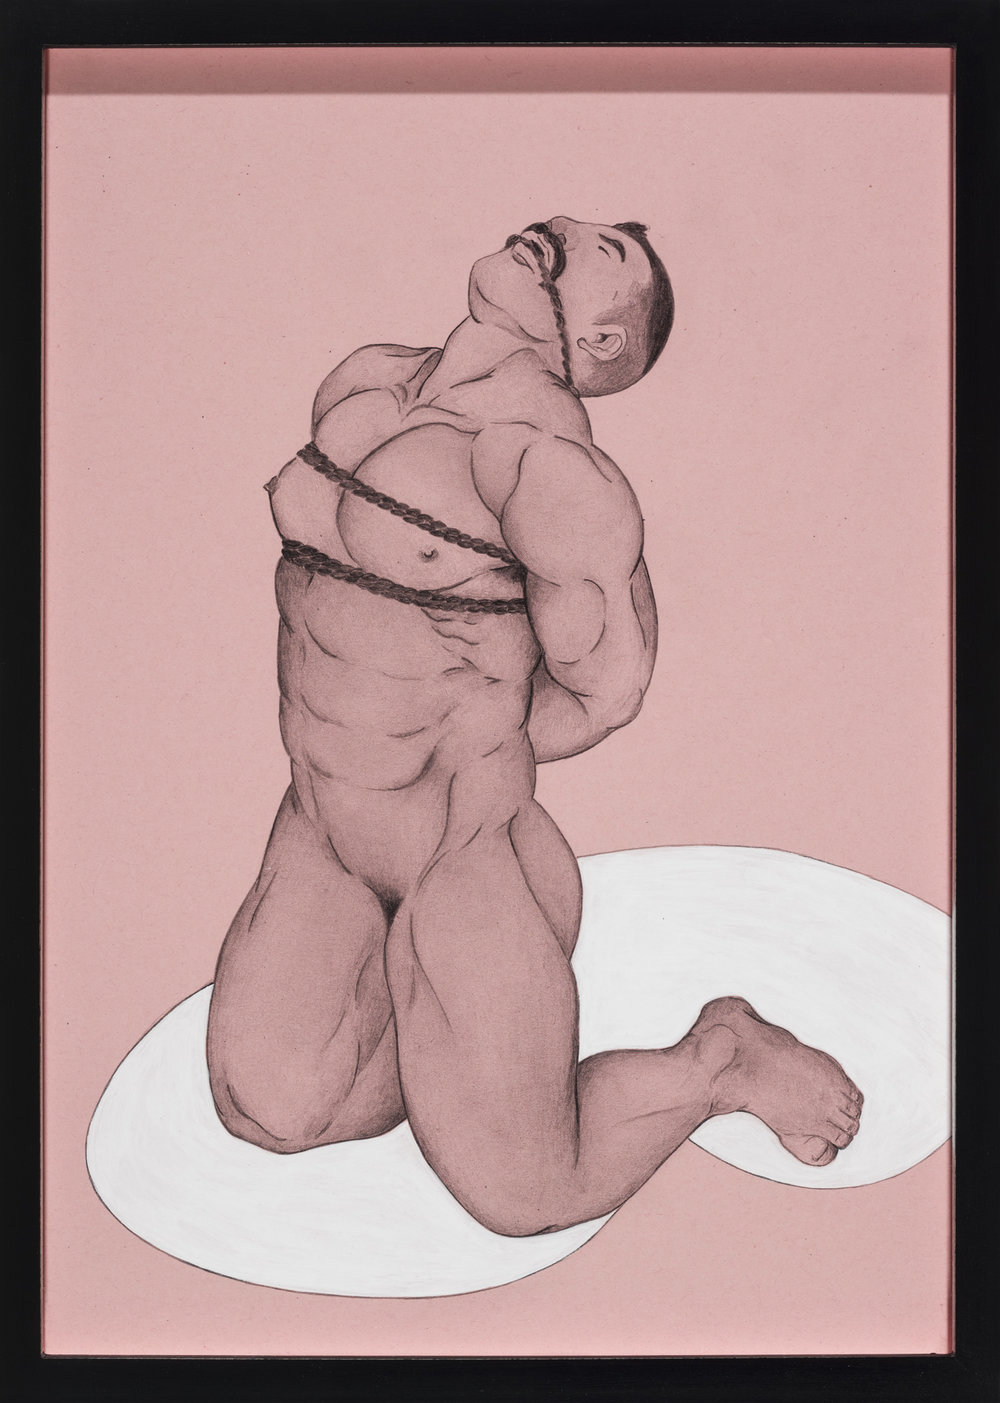 Sakura no Ma Ni kyosci (after Gengoro Fagane) , 2014  Pencil and acrylic on pink paper  31 × 22 cm